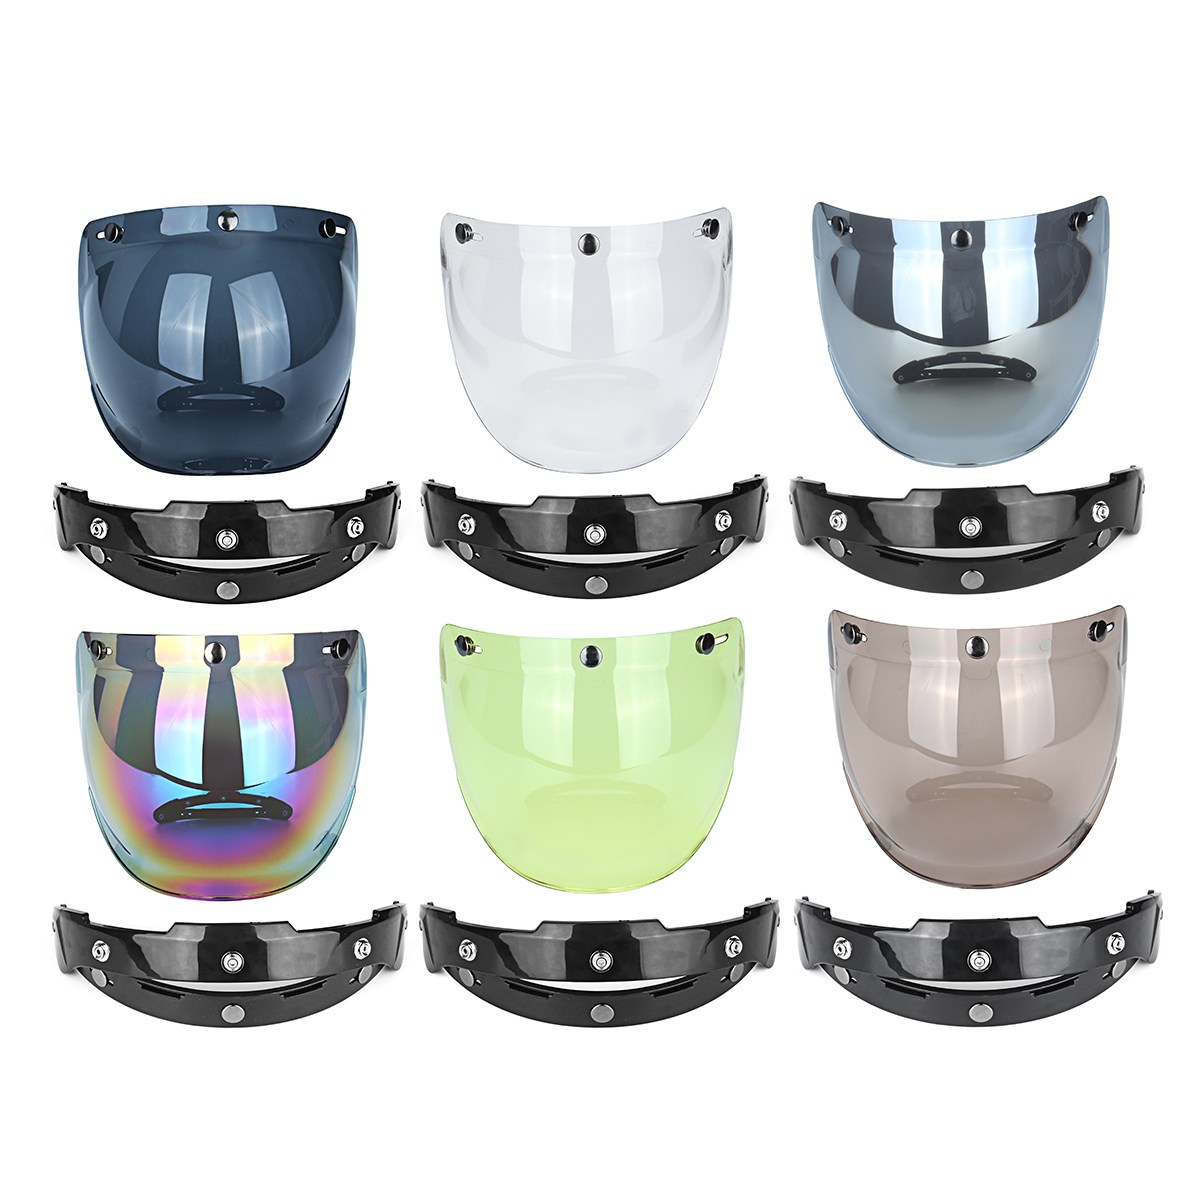 цена на Windproof Motorcycle Helmet Bubble Visor Lens Retro Motorbike Bubble Shield Mask Visor For Harley Cafe Racer